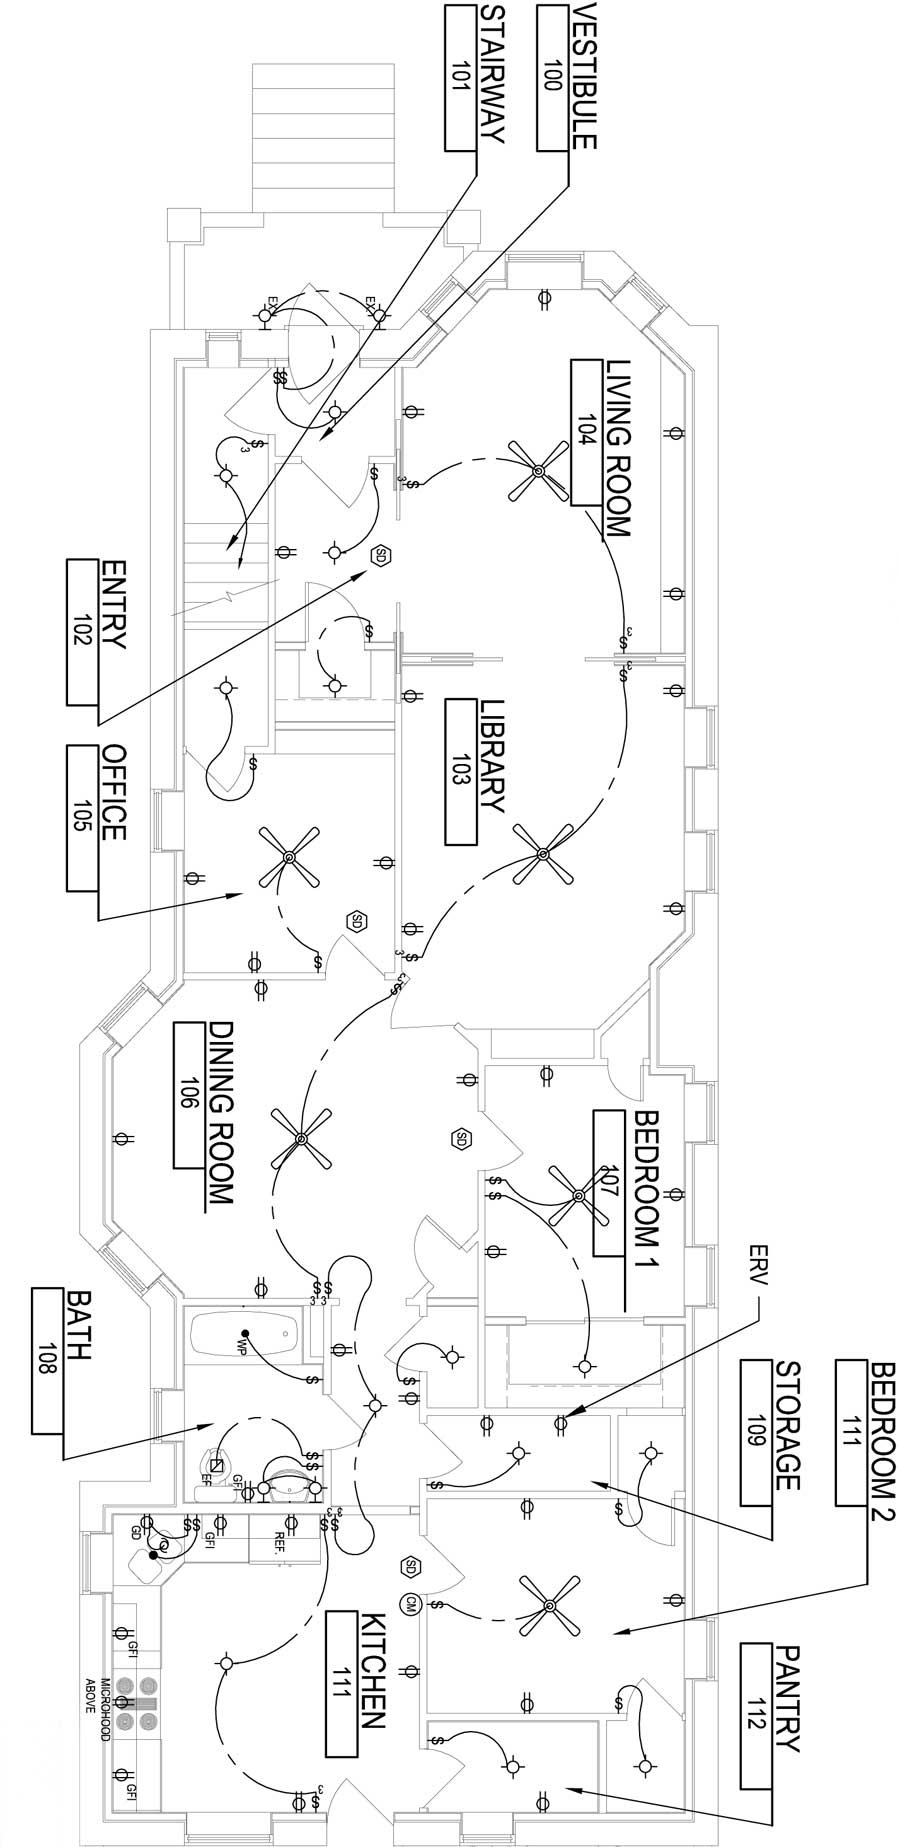 Electrical Wiring House Plans Luxury 29ad7 Drawing An Electrical Plan